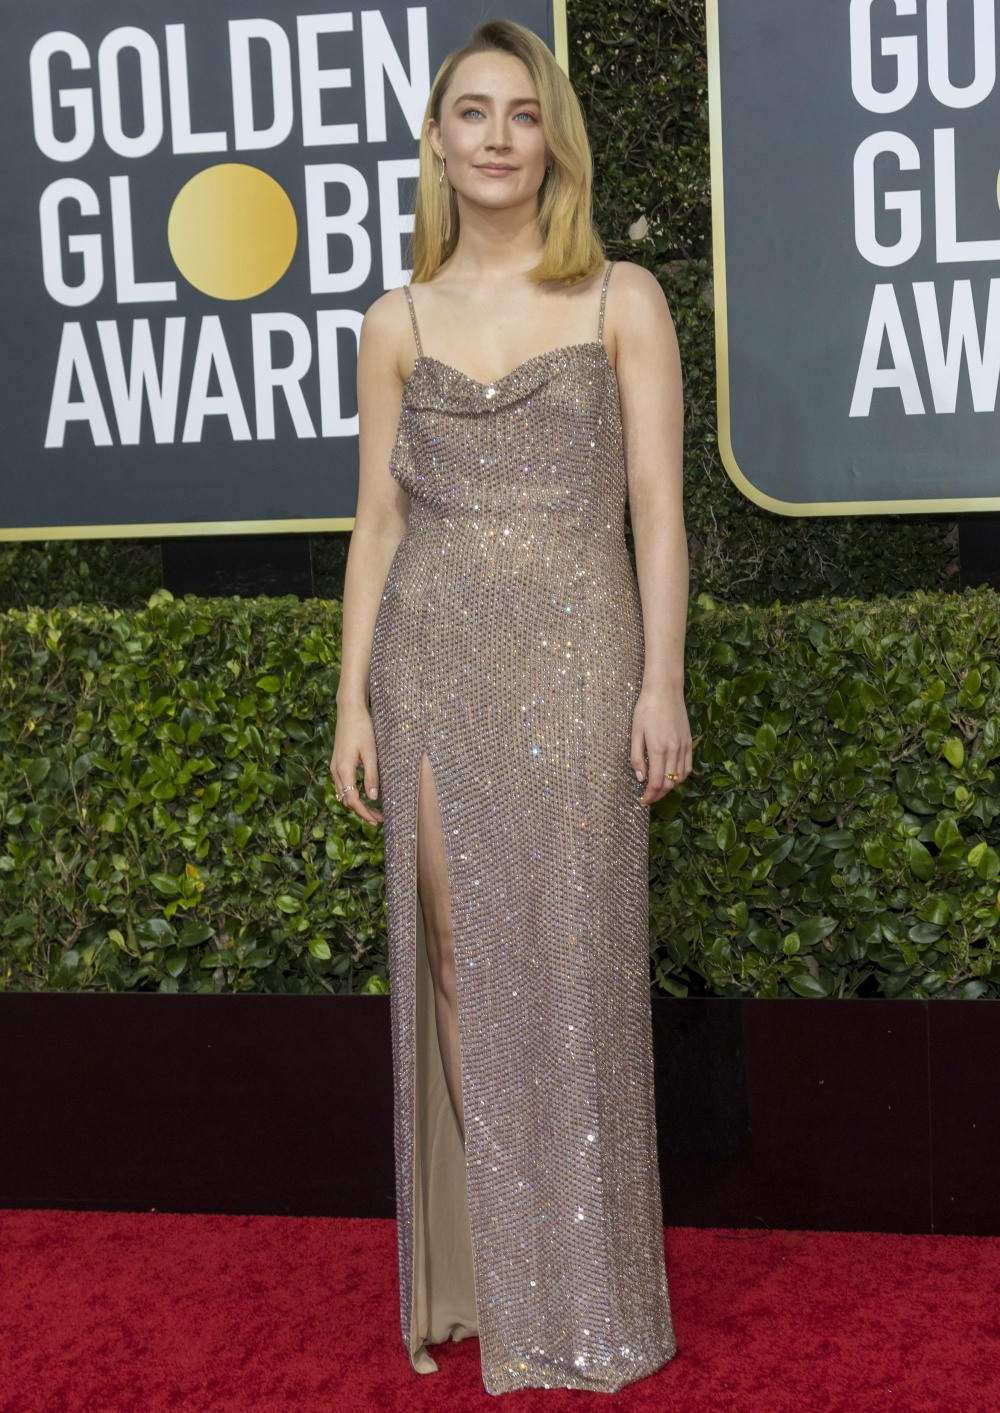 Saoirse Ronan attends the 77th Annual Golden Globe Awards, Golden Globes, at Hotel Beverly Hilton in Beverly Hills, Los Angeles, USA, on 05 January 2020. | usage worldwide